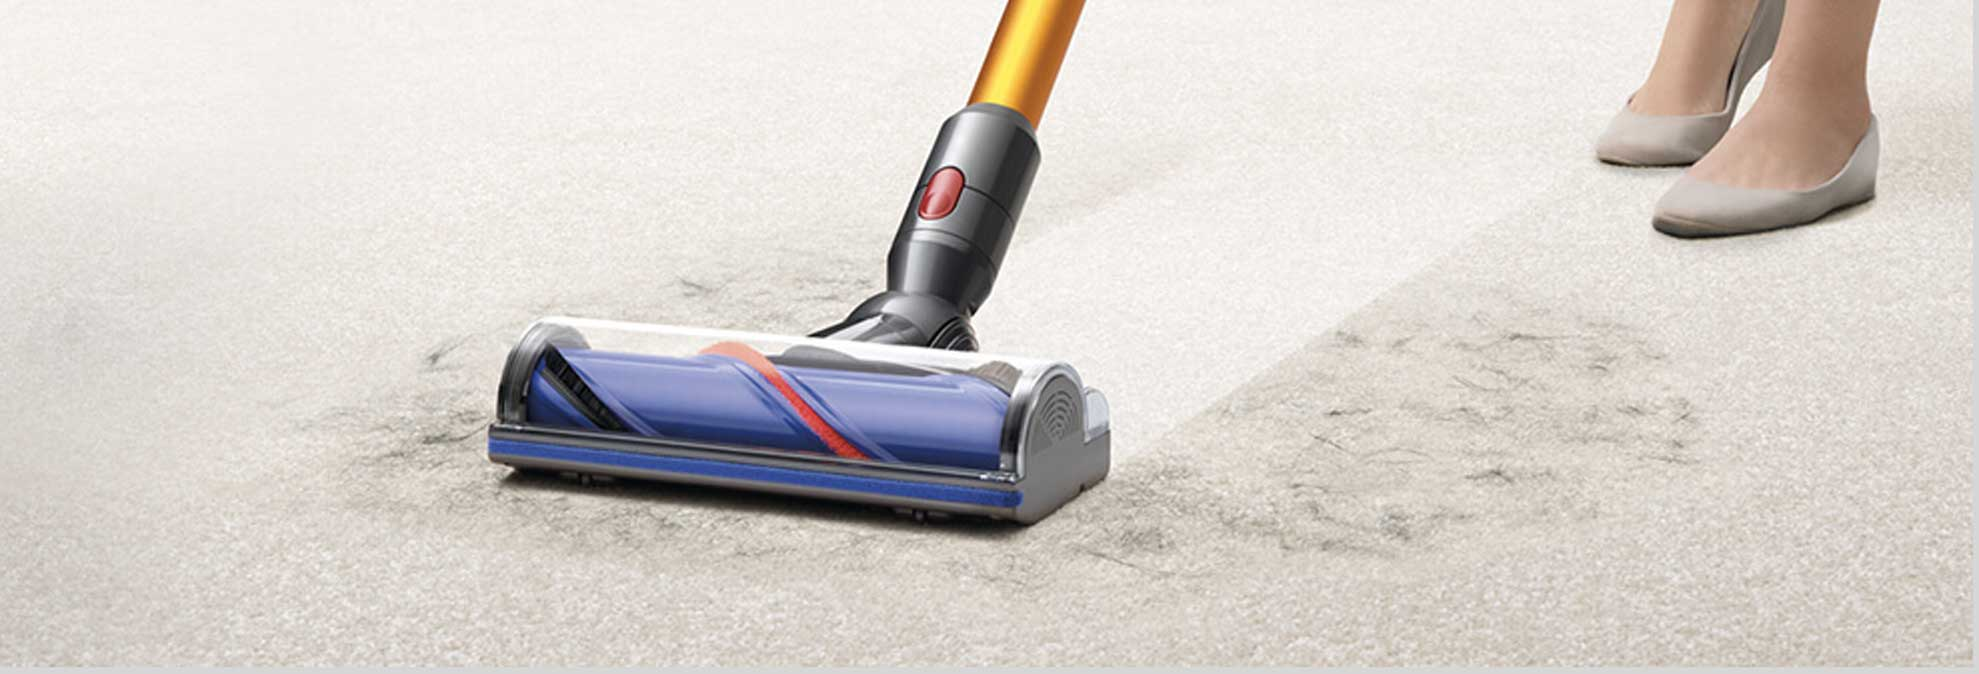 dyson v8 absolute best stick vacuum ever consumer reports. Black Bedroom Furniture Sets. Home Design Ideas